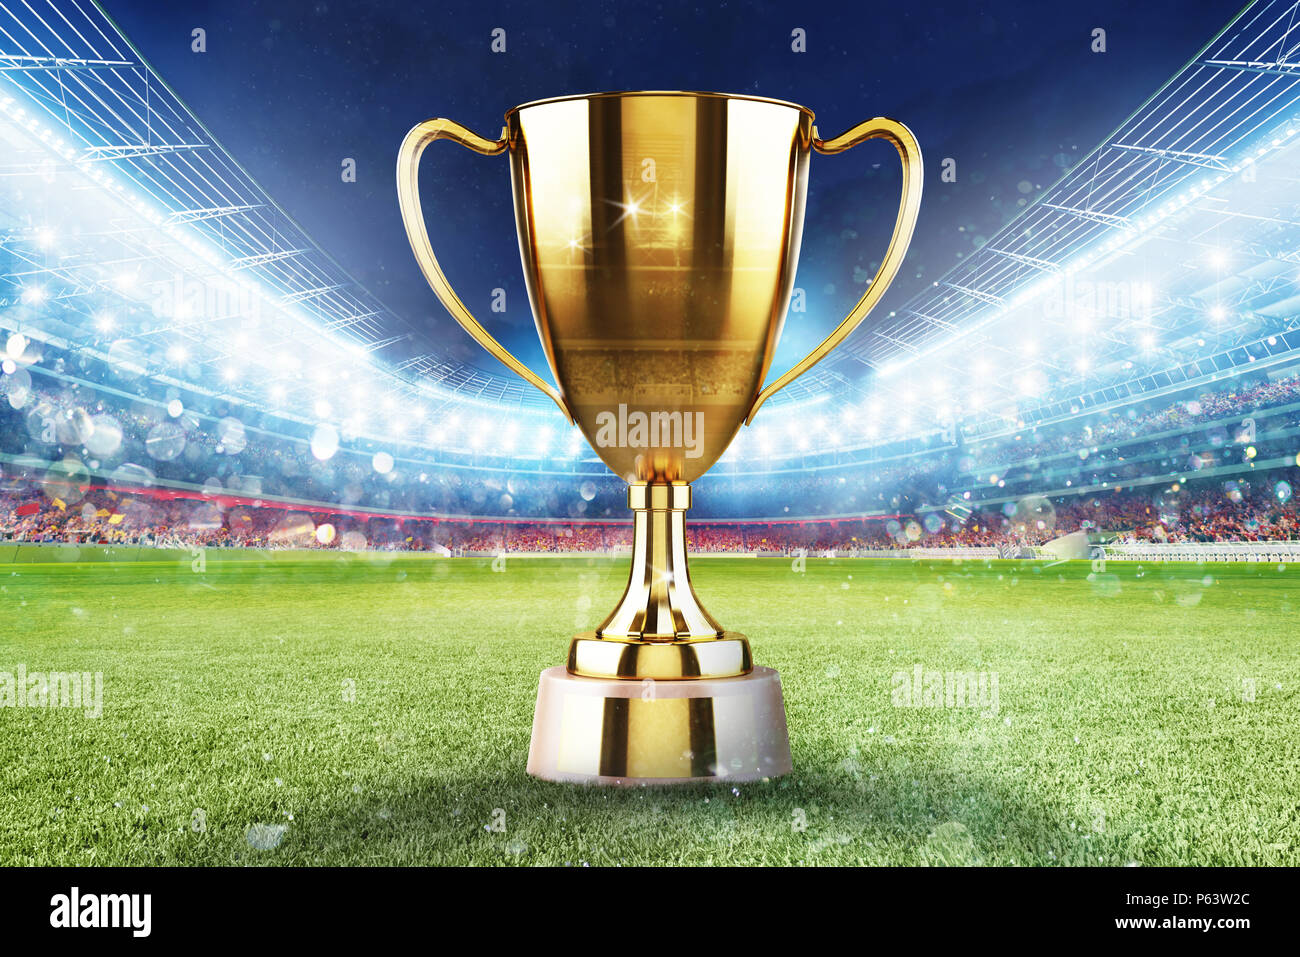 Golden winner s cup in the middle of a soccer stadium with audience - Stock Image